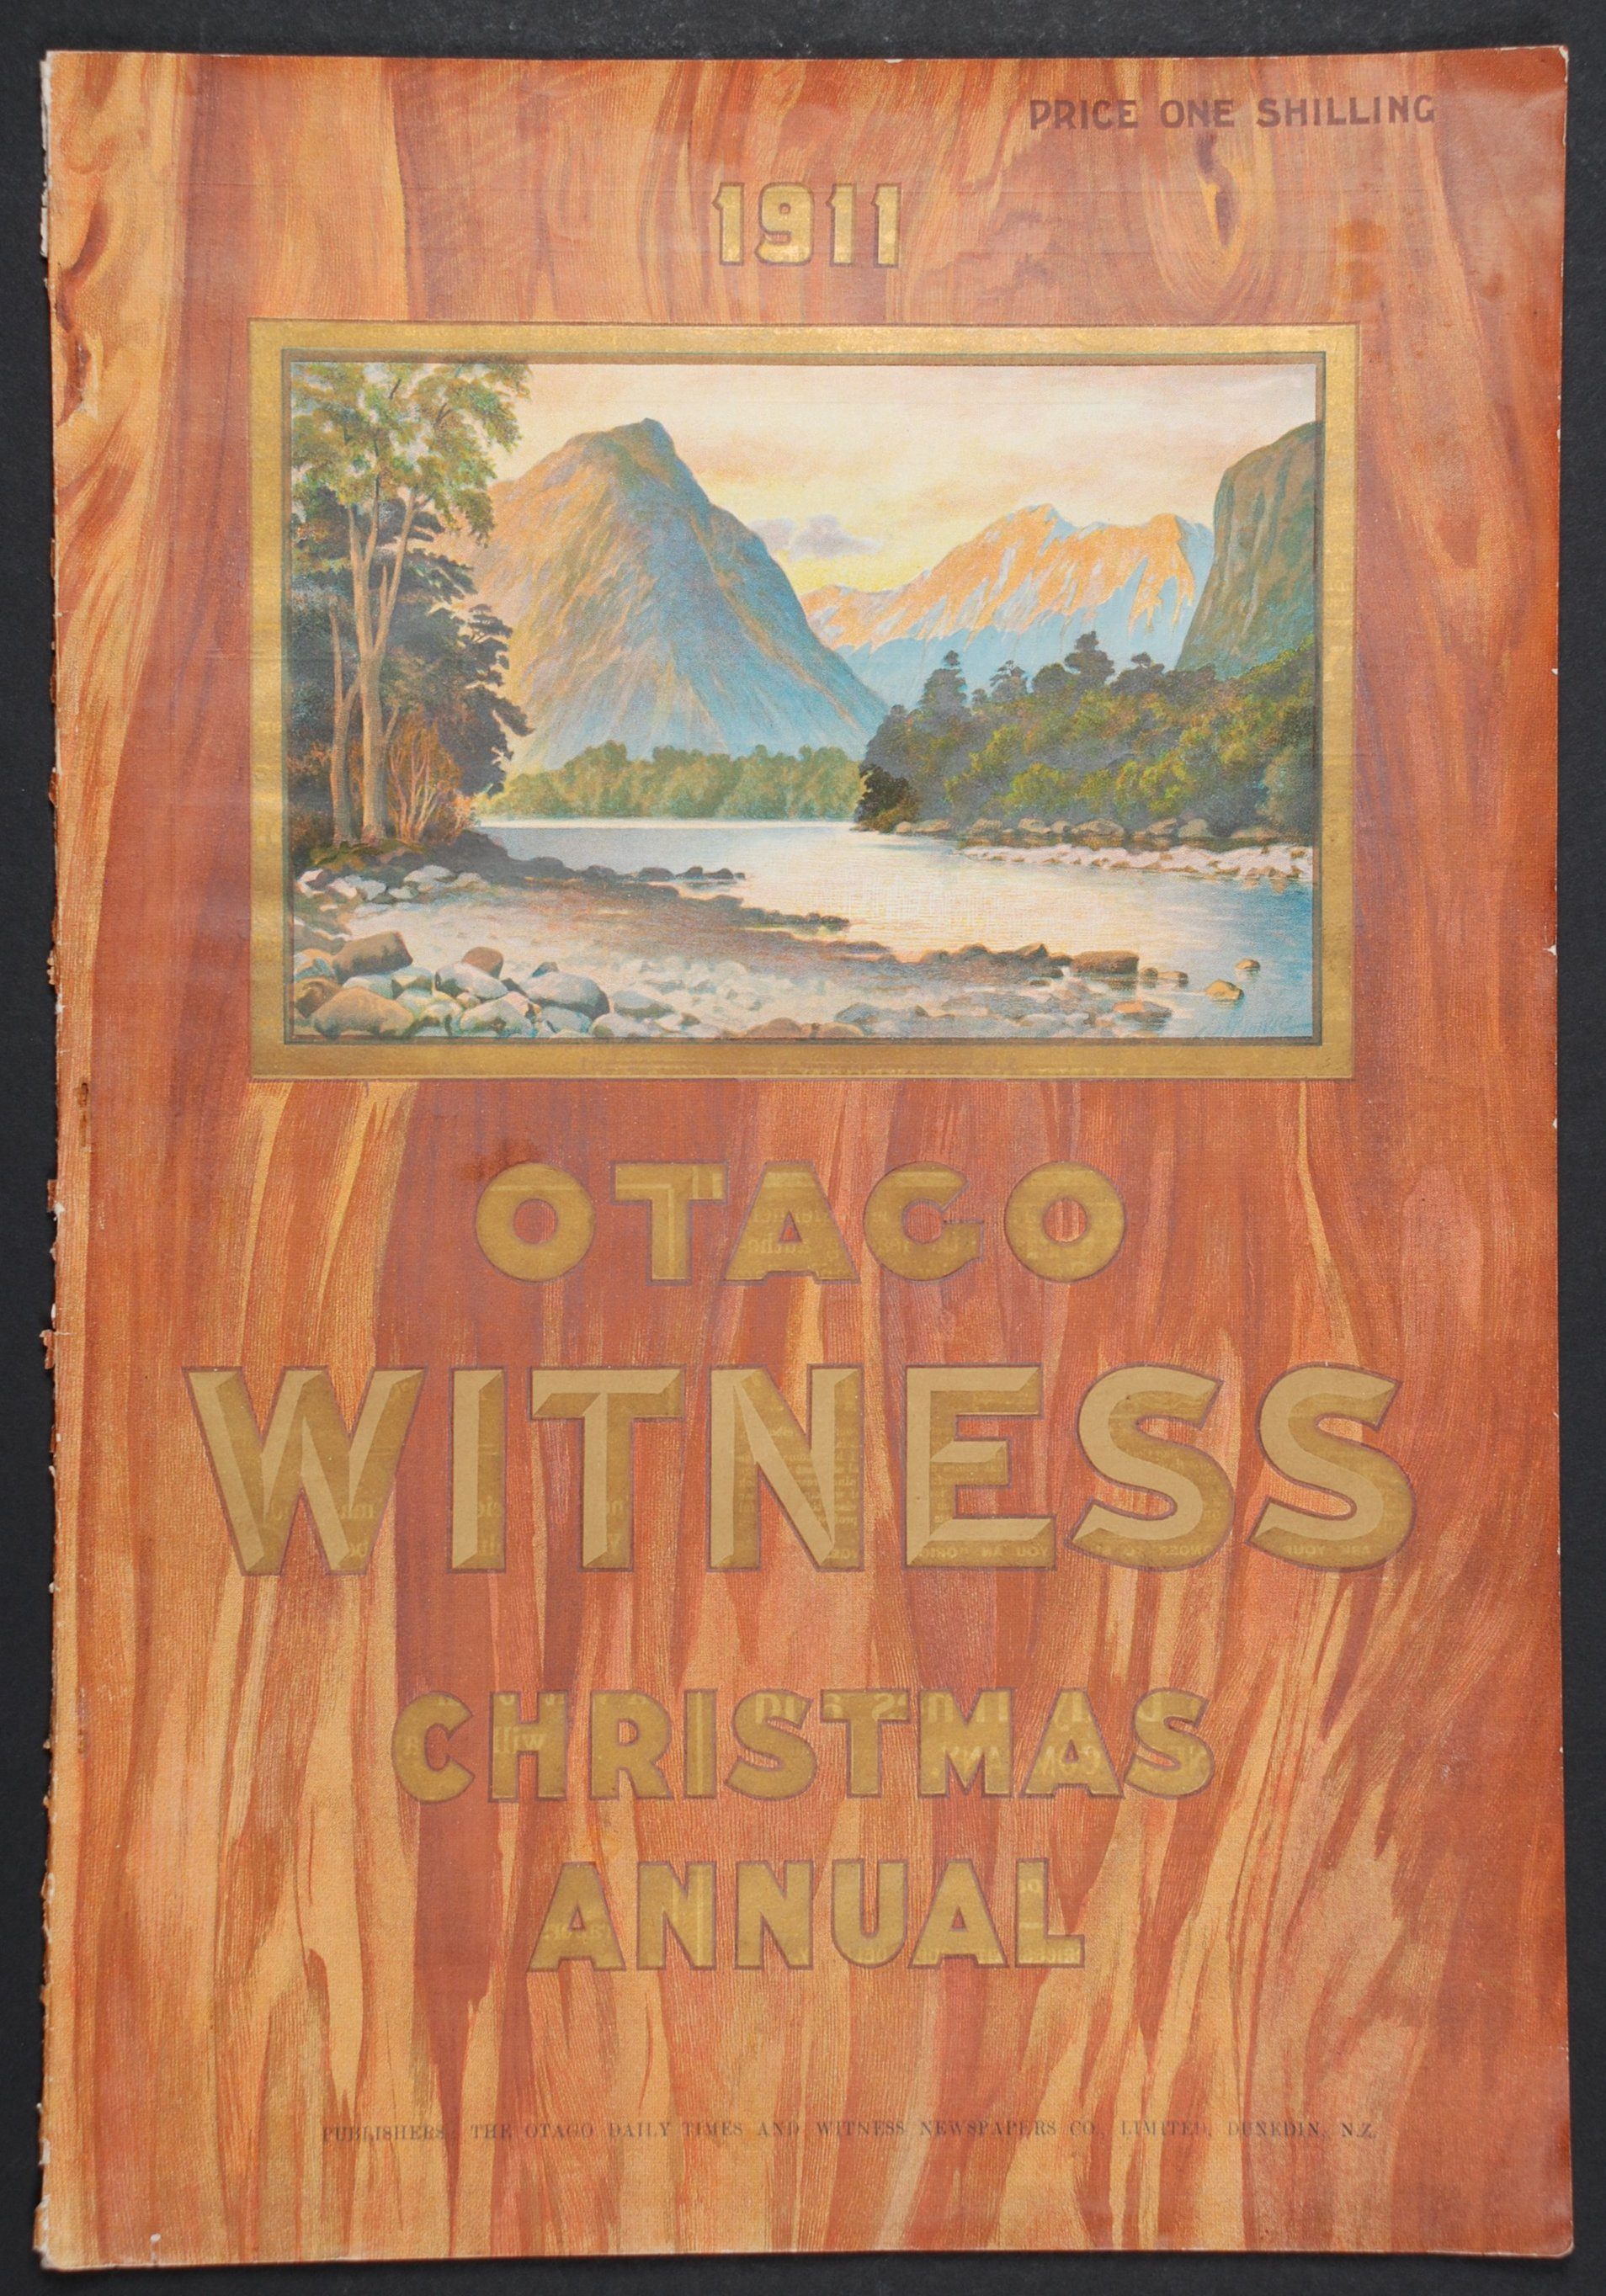 The Otago Witness. Christmas Annual, 1911.